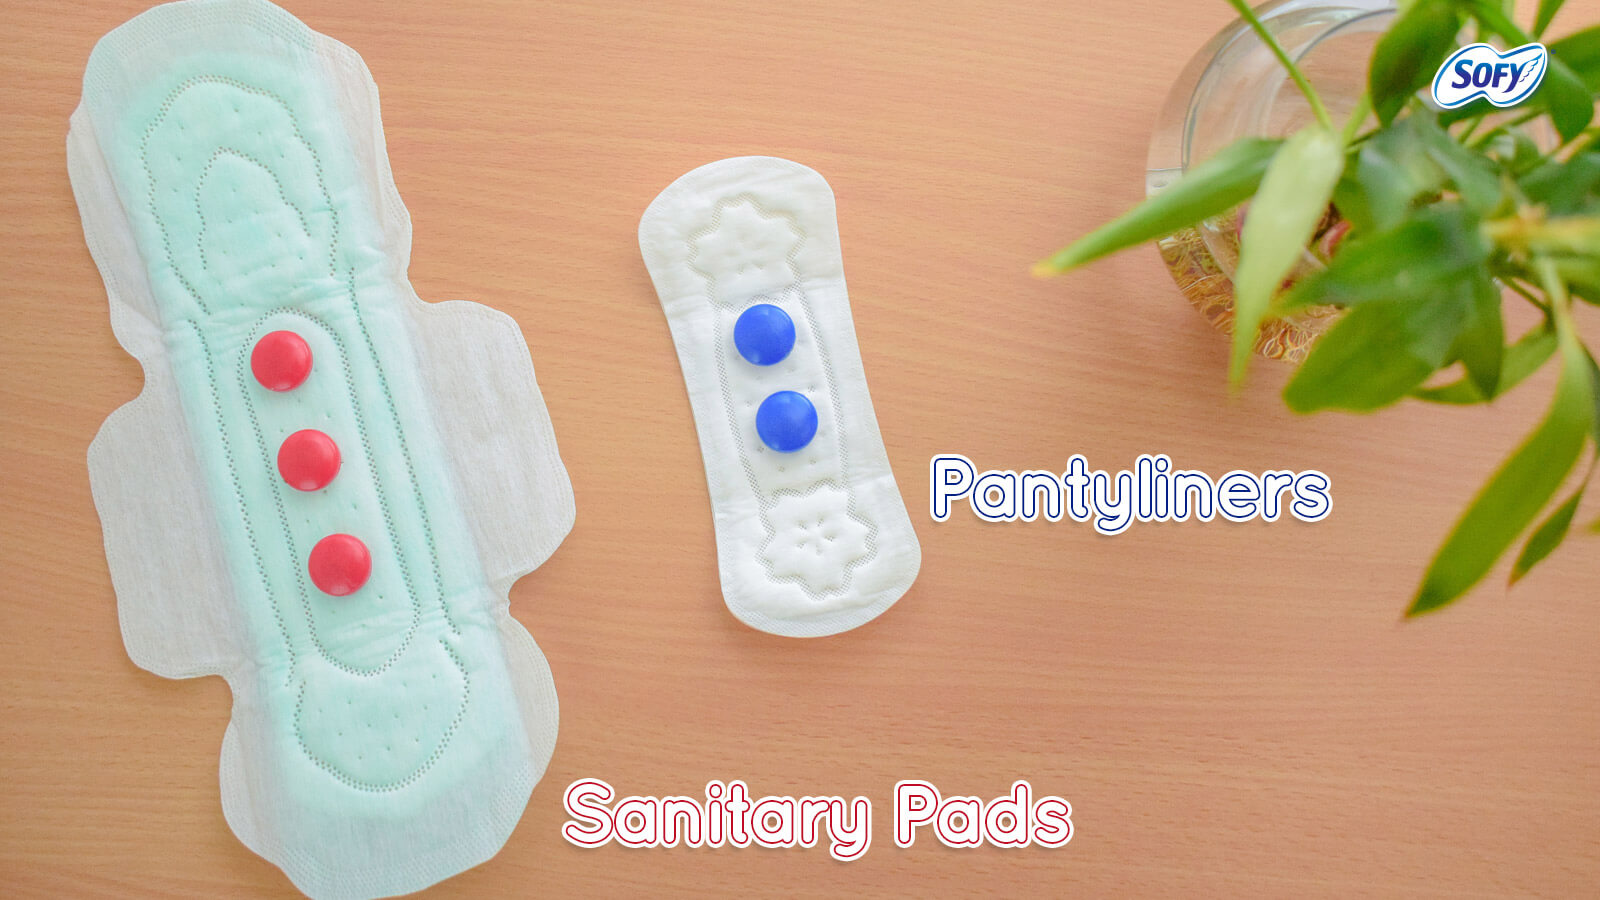 Pads & Panty liners: How They Are Different! | Sofy